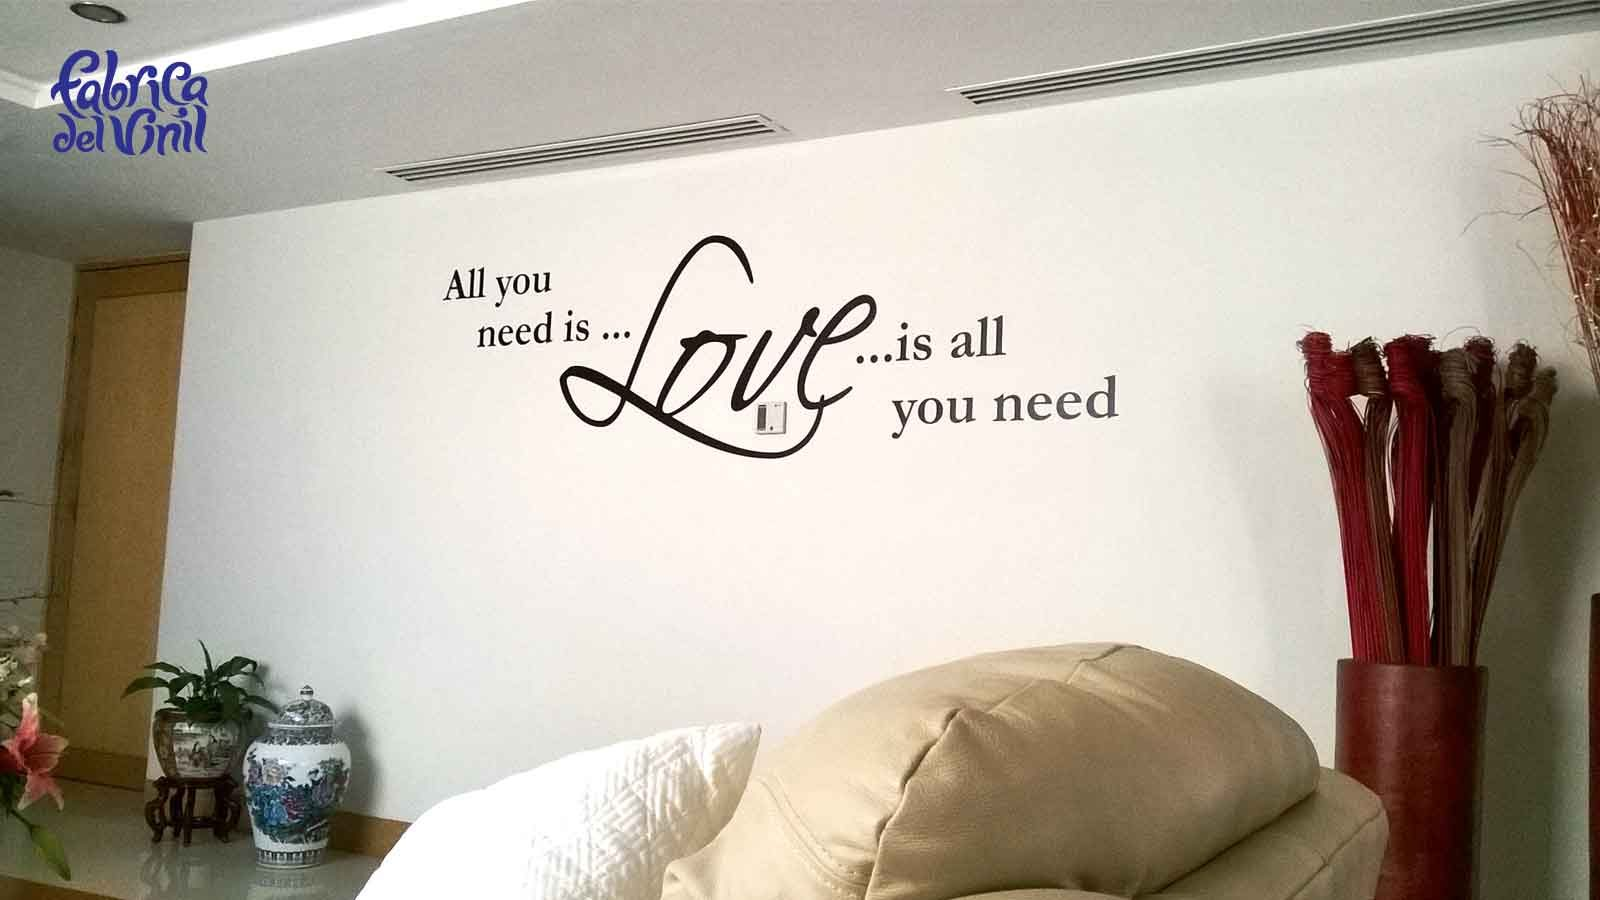 All you need is love es una frase de cancion, fabricada en vinilo adherible para decorar paredes de casas, departamentos, oficinas y negocios. Compra tus vinilos decorativos en fabrica del vinil.